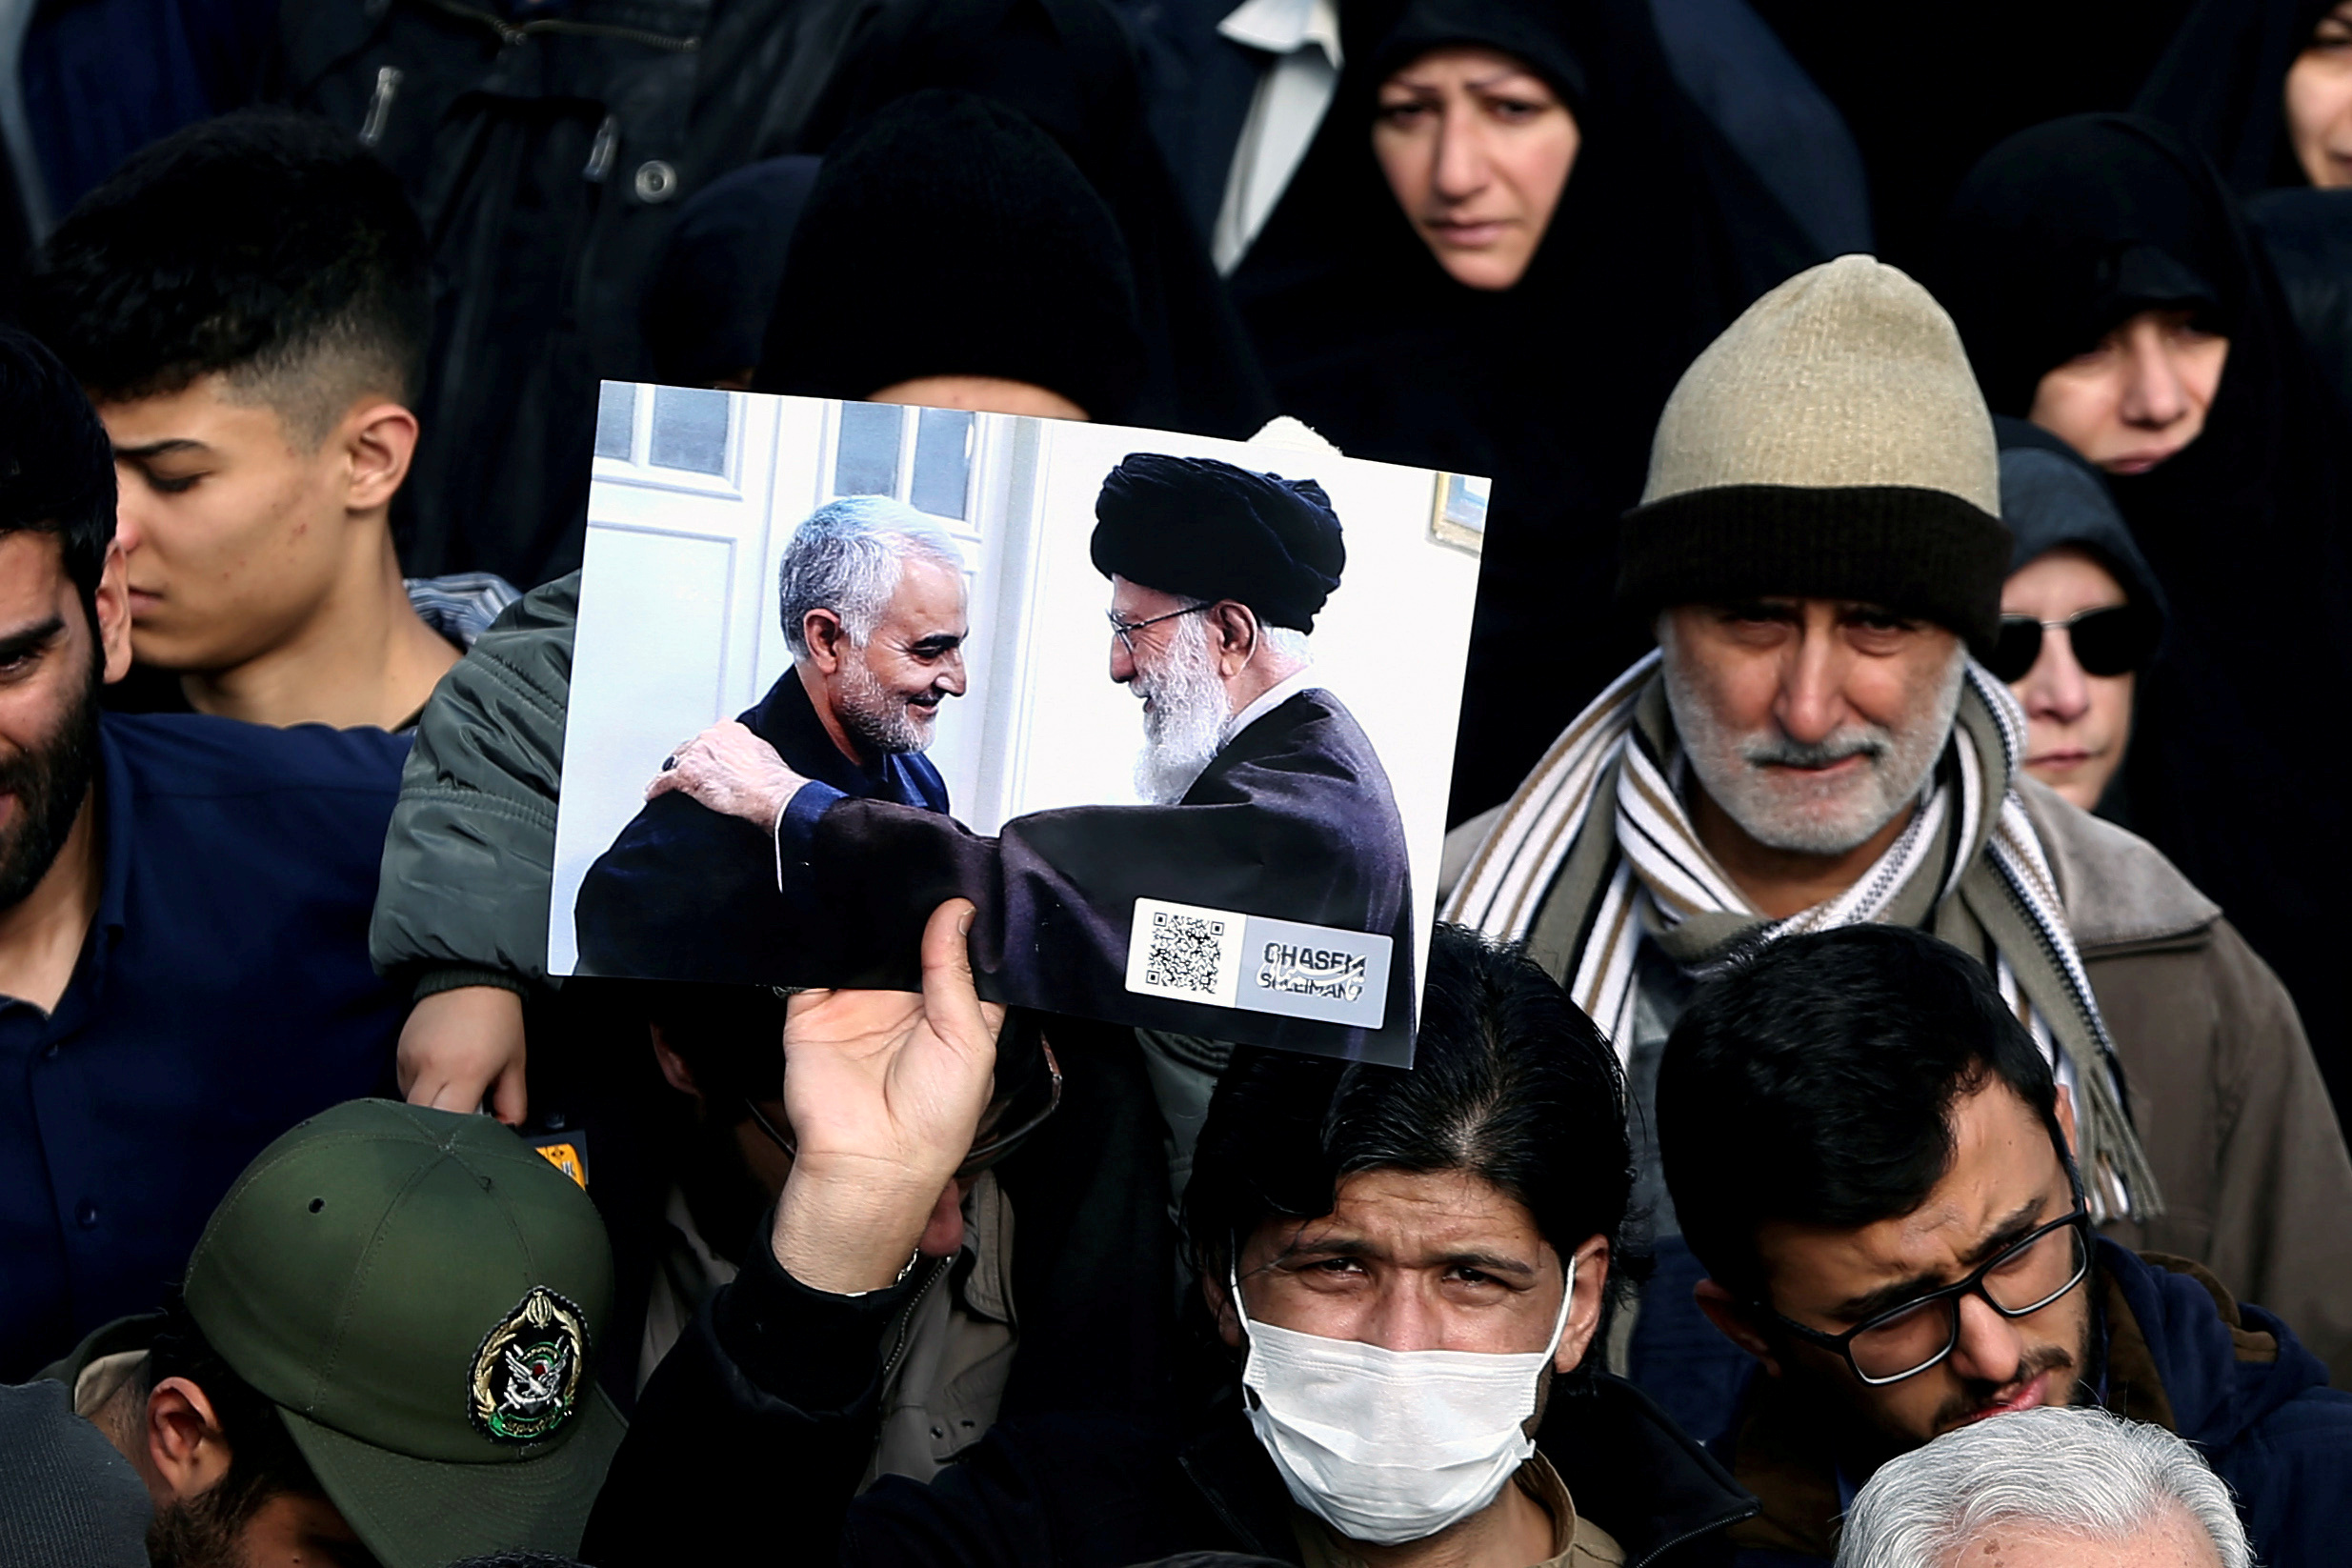 A demonstrator holds a picture of Supreme Leader Ayatollah Ali Khamenei with Iranian Major-General Qassem Soleimani, during protest against the assassination of Soleimani, head of the elite Quds Force, and Iraqi militia commander Abu Mahdi al-Muhandis who were killed in an air strike in Baghdad airport, in Tehran, Iran January 3, 2020. WANA (West Asia News Agency)/Nazanin Tabatabaee via REUTERS ATTENTION EDITORS - THIS IMAGE HAS BEEN SUPPLIED BY A THIRD PARTY.